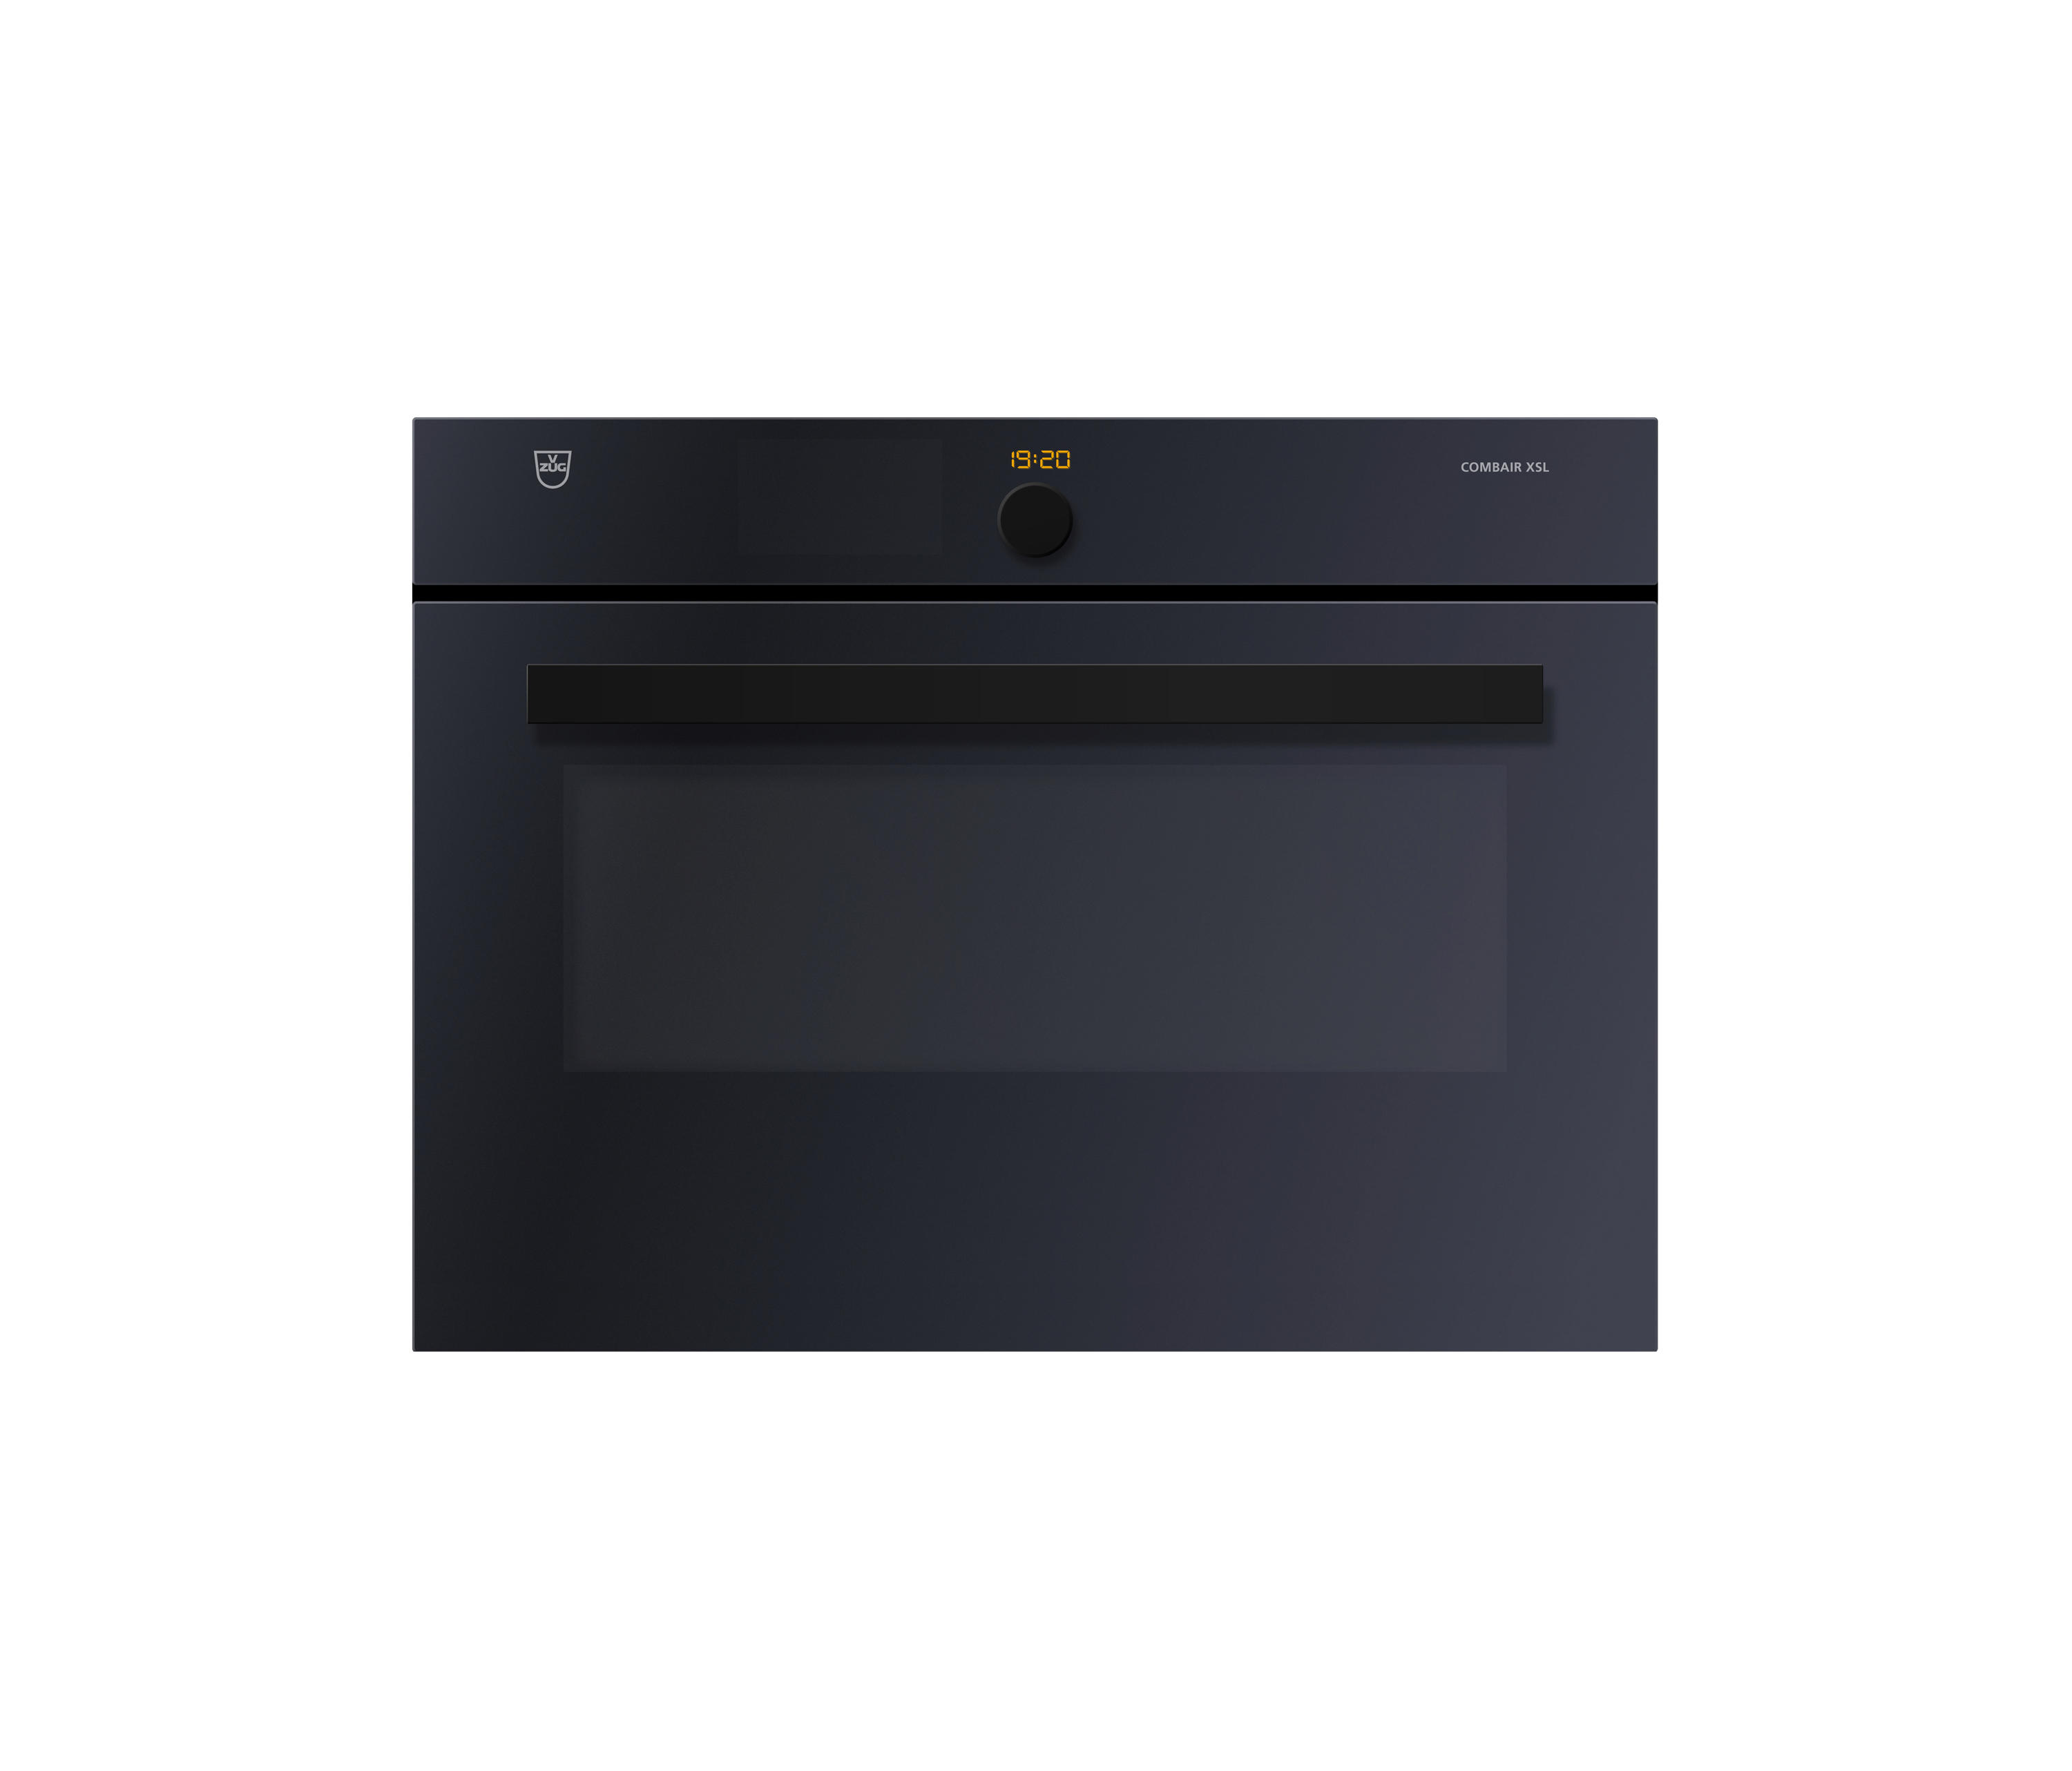 backofen combair xsl bcxsl60g back fen von v zug architonic. Black Bedroom Furniture Sets. Home Design Ideas